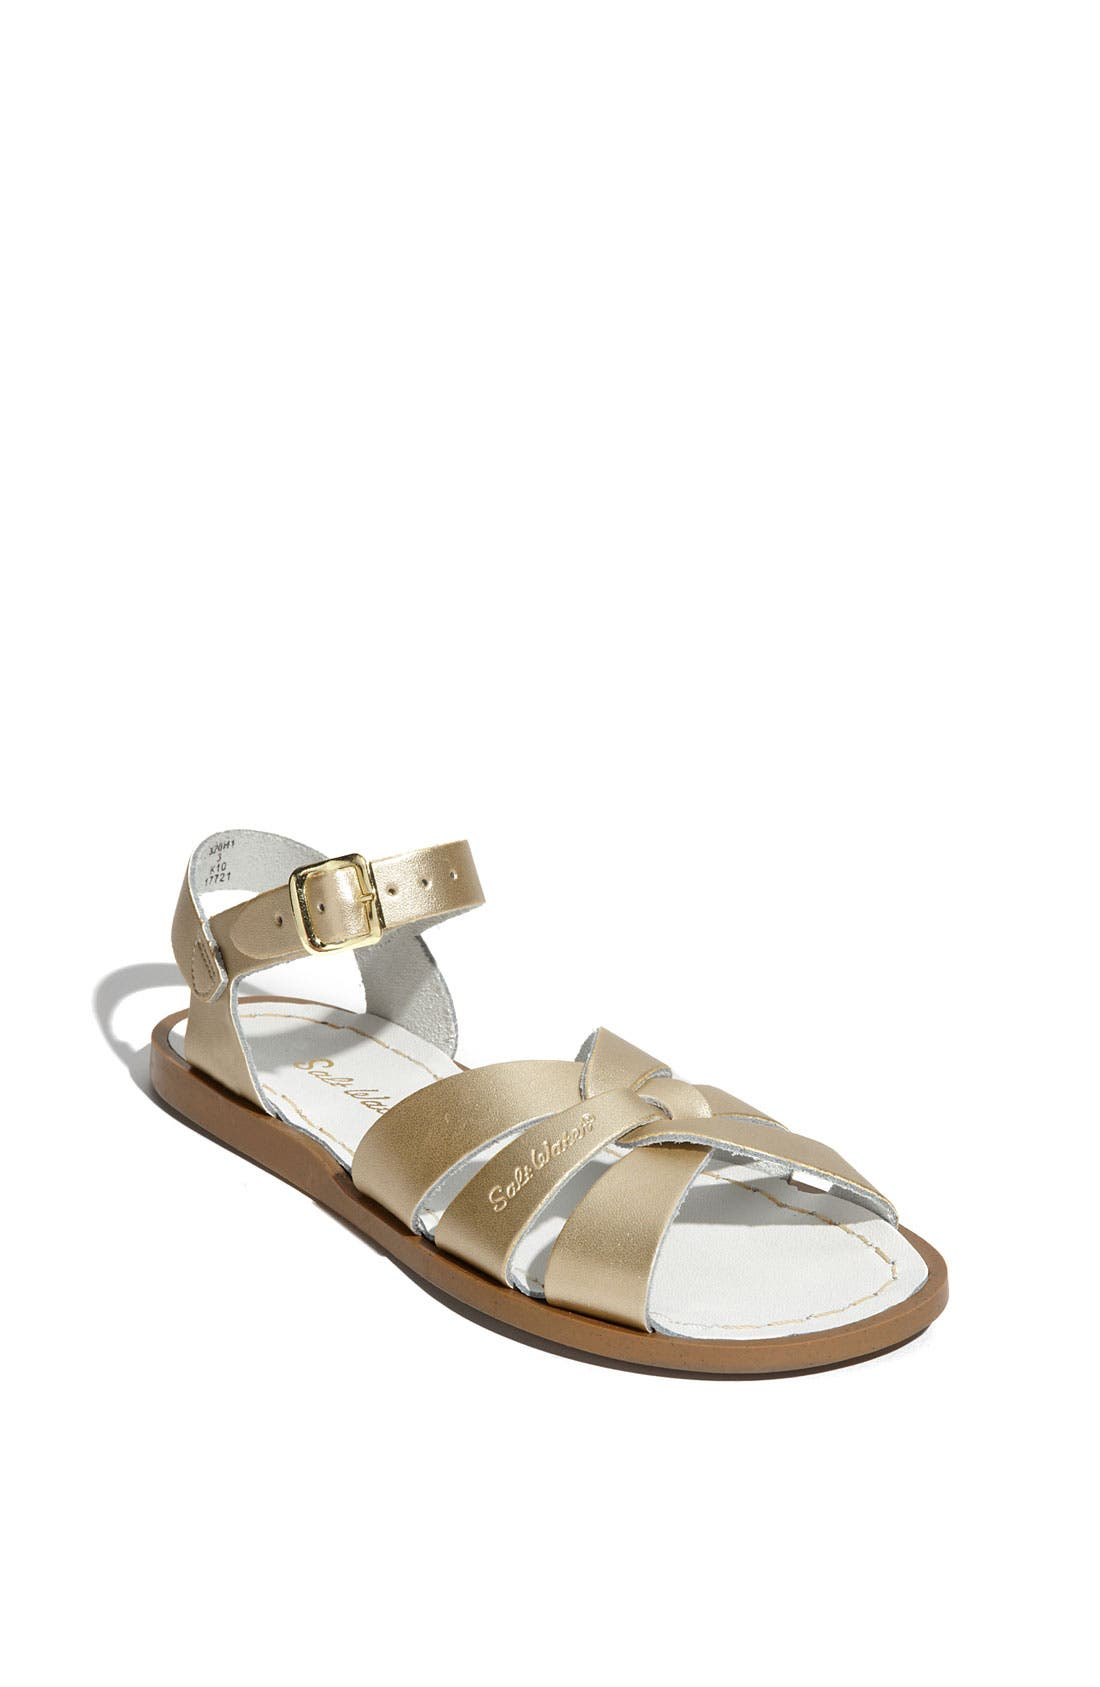 Salt Water Sandals by Hoy Sandal (Baby, Walker, Toddler, Little Kid & Big Kid)